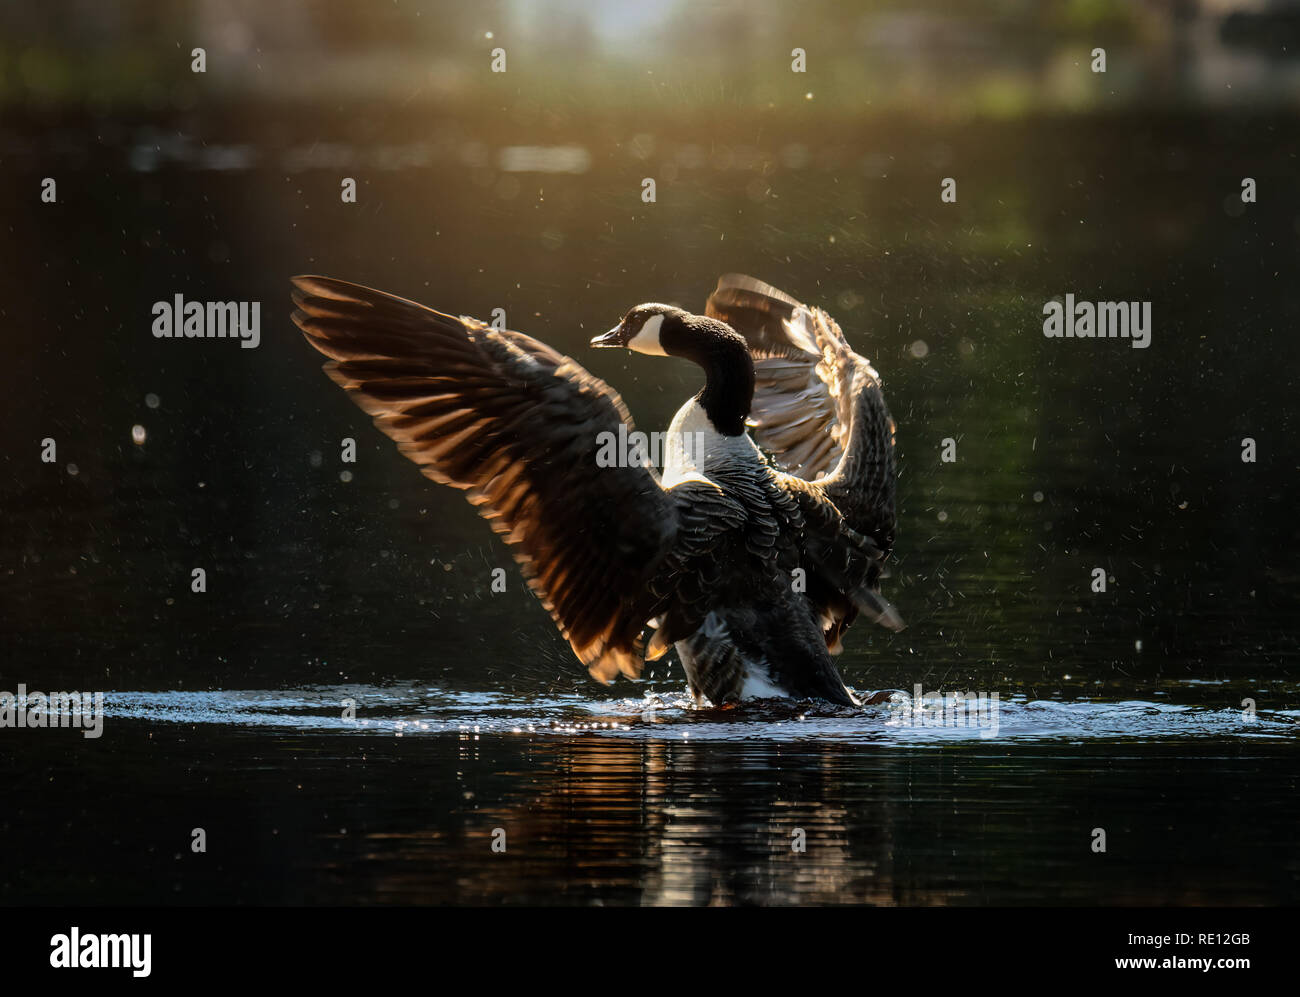 canada goose flapping its wings in small lake - Stock Image